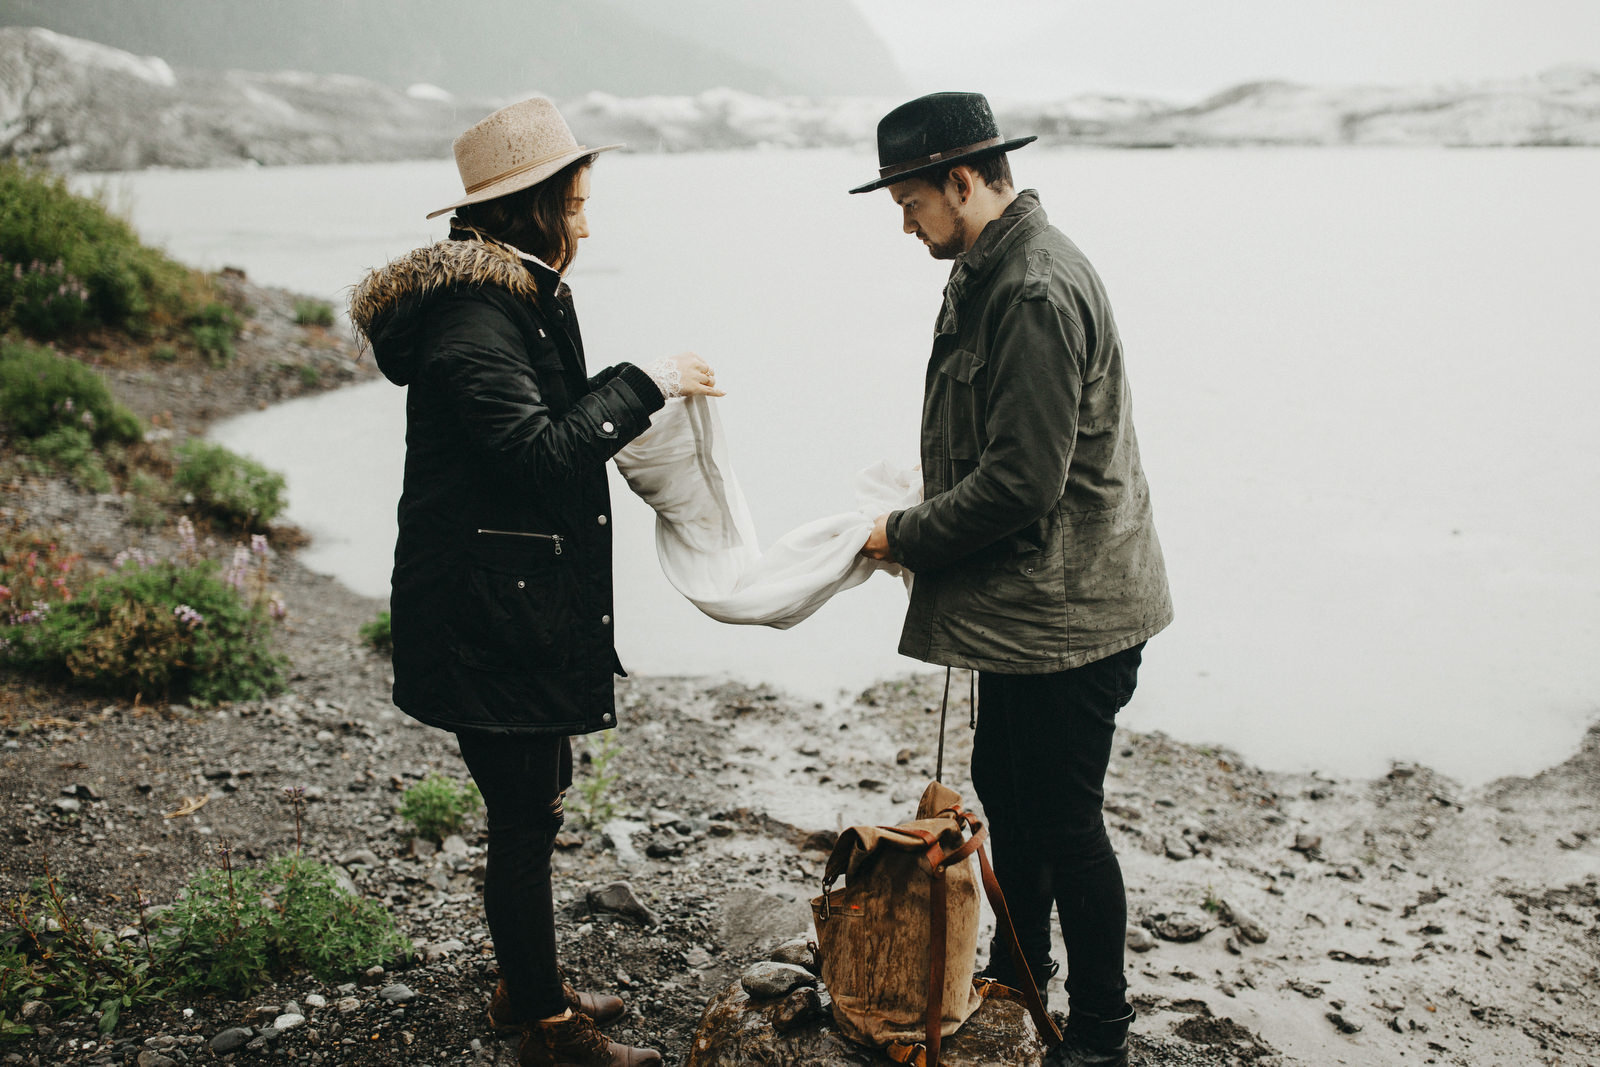 athena-and-camron-alaska-elopement-wedding-inspiration-india-earl-athena-grace-glacier-lagoon-wedding70